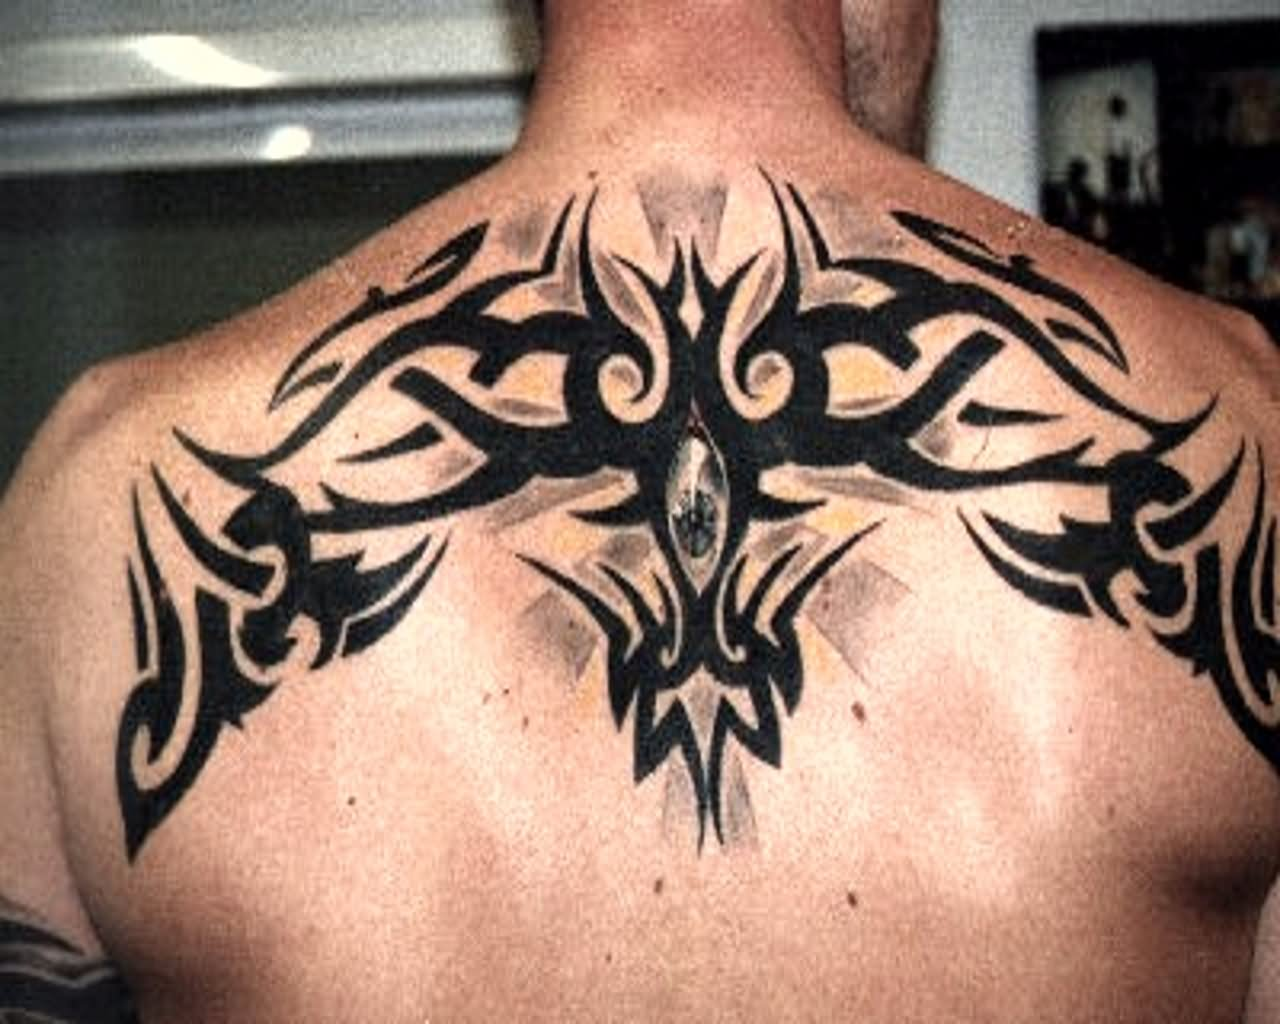 Tribal-Tattoos Black-Tribal-Design-Tattoo-On-Man-Upper-Back